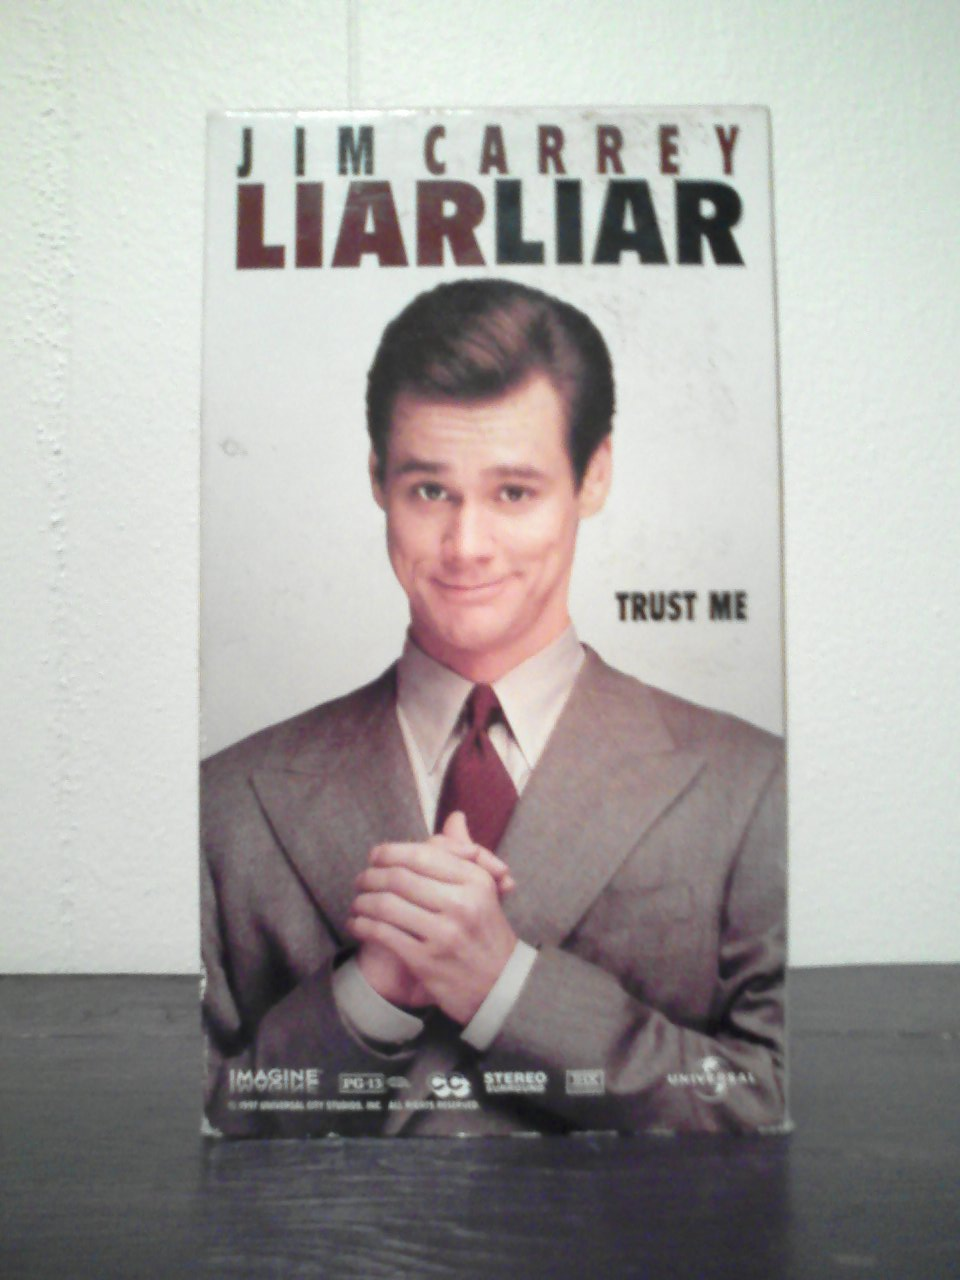 Liar Liar Movie Quotes. QuotesGram